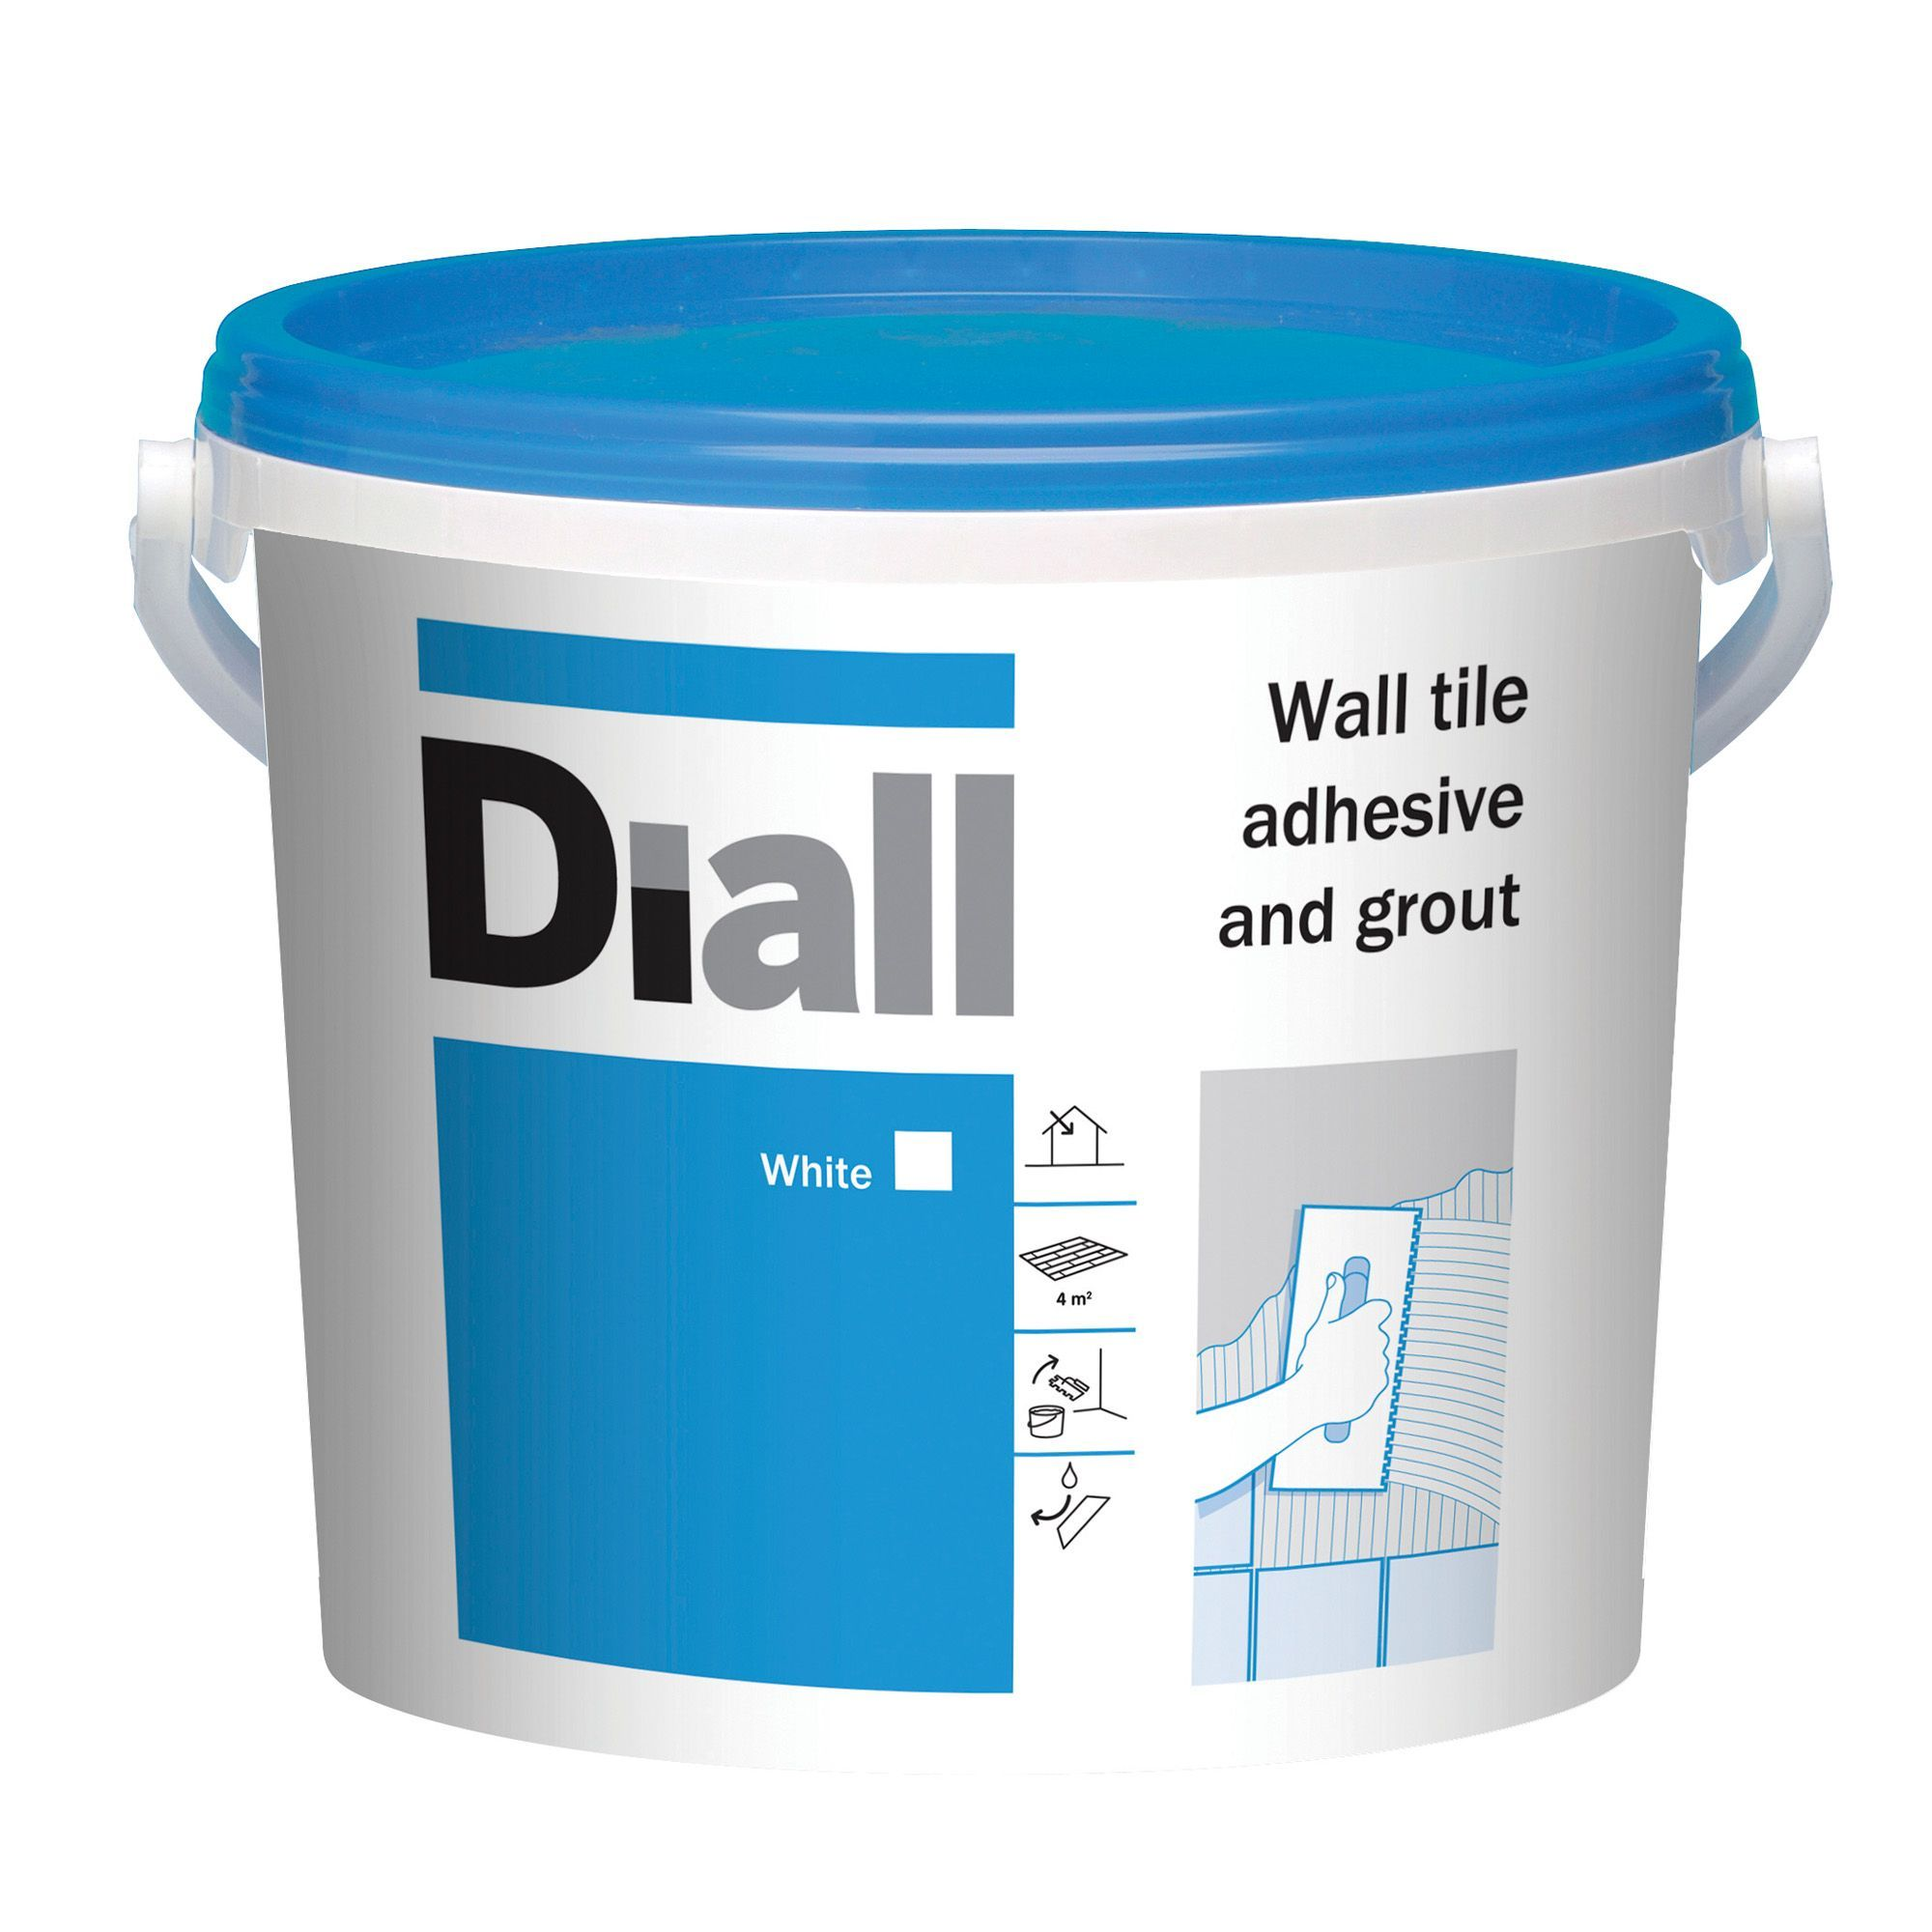 Diall Ready to Use Wall Tile Adhesive & Grout, White 6.6kg | Wall ...